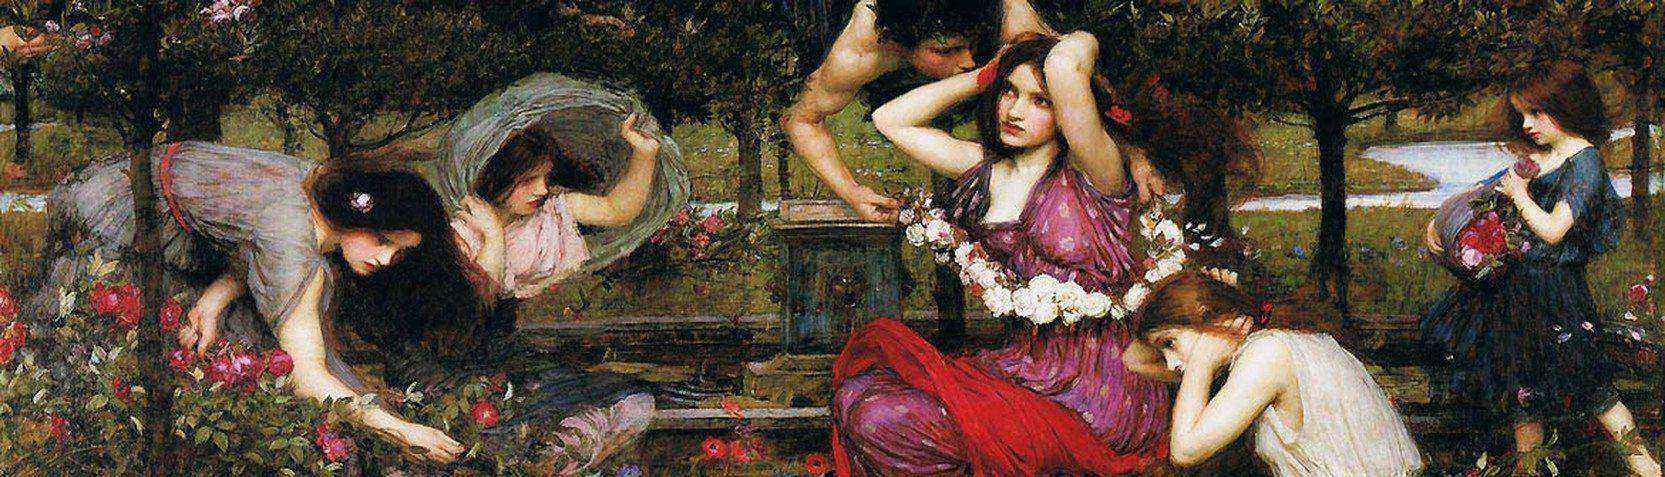 Artistas - John William Waterhouse